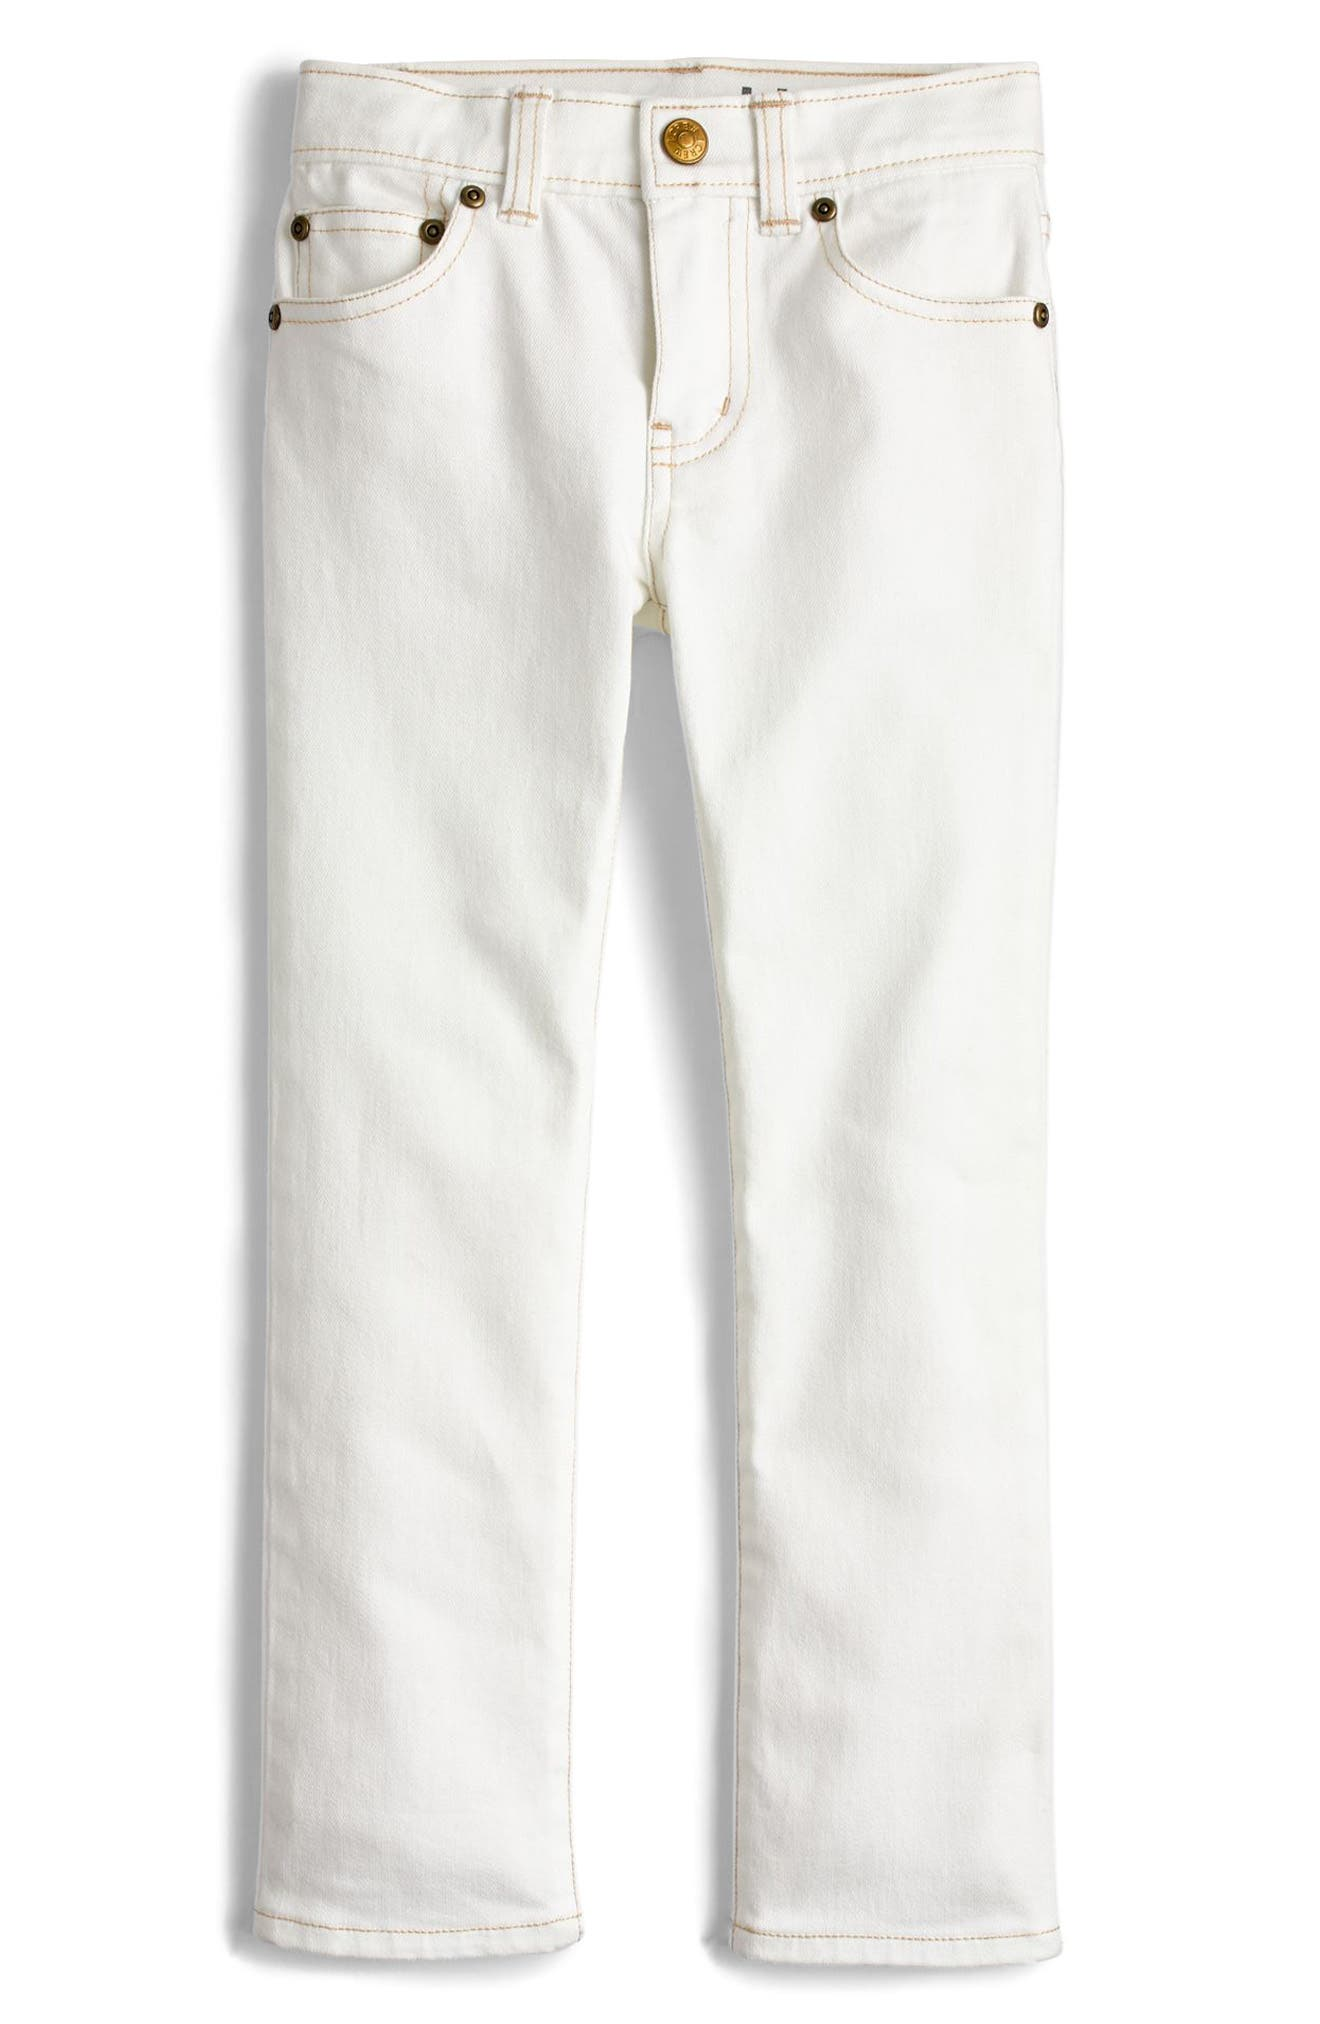 Stretch Skinny Fit Jeans,                         Main,                         color, Bleach White